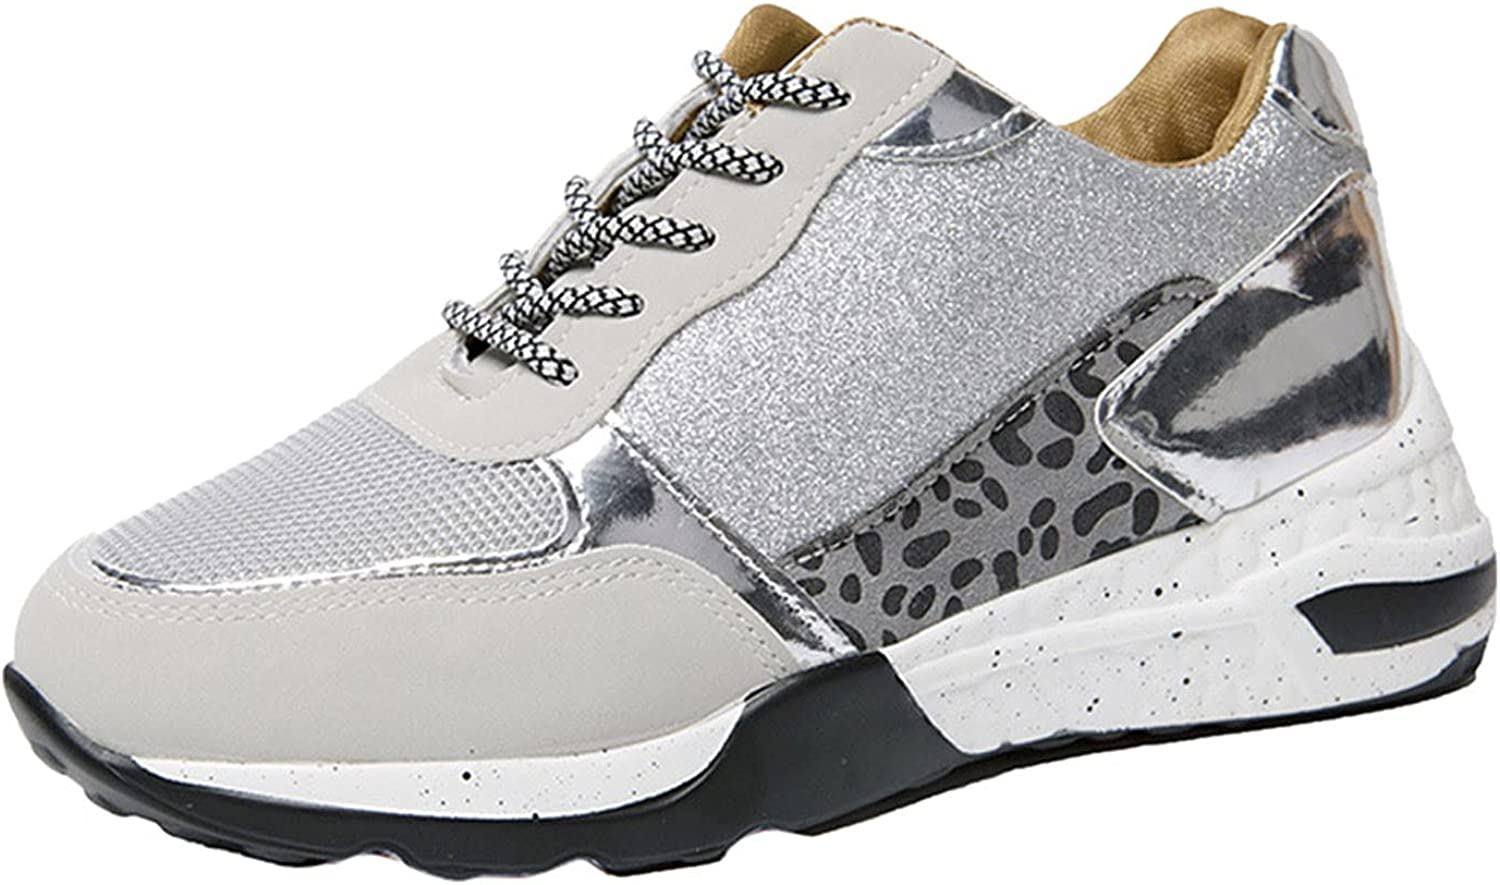 HLENLO Women's Walking Shoes, Women Casual Slip On Sport Shoes Breathable Sequins Shoes Running Tennis Shoes Ladies Sneakers